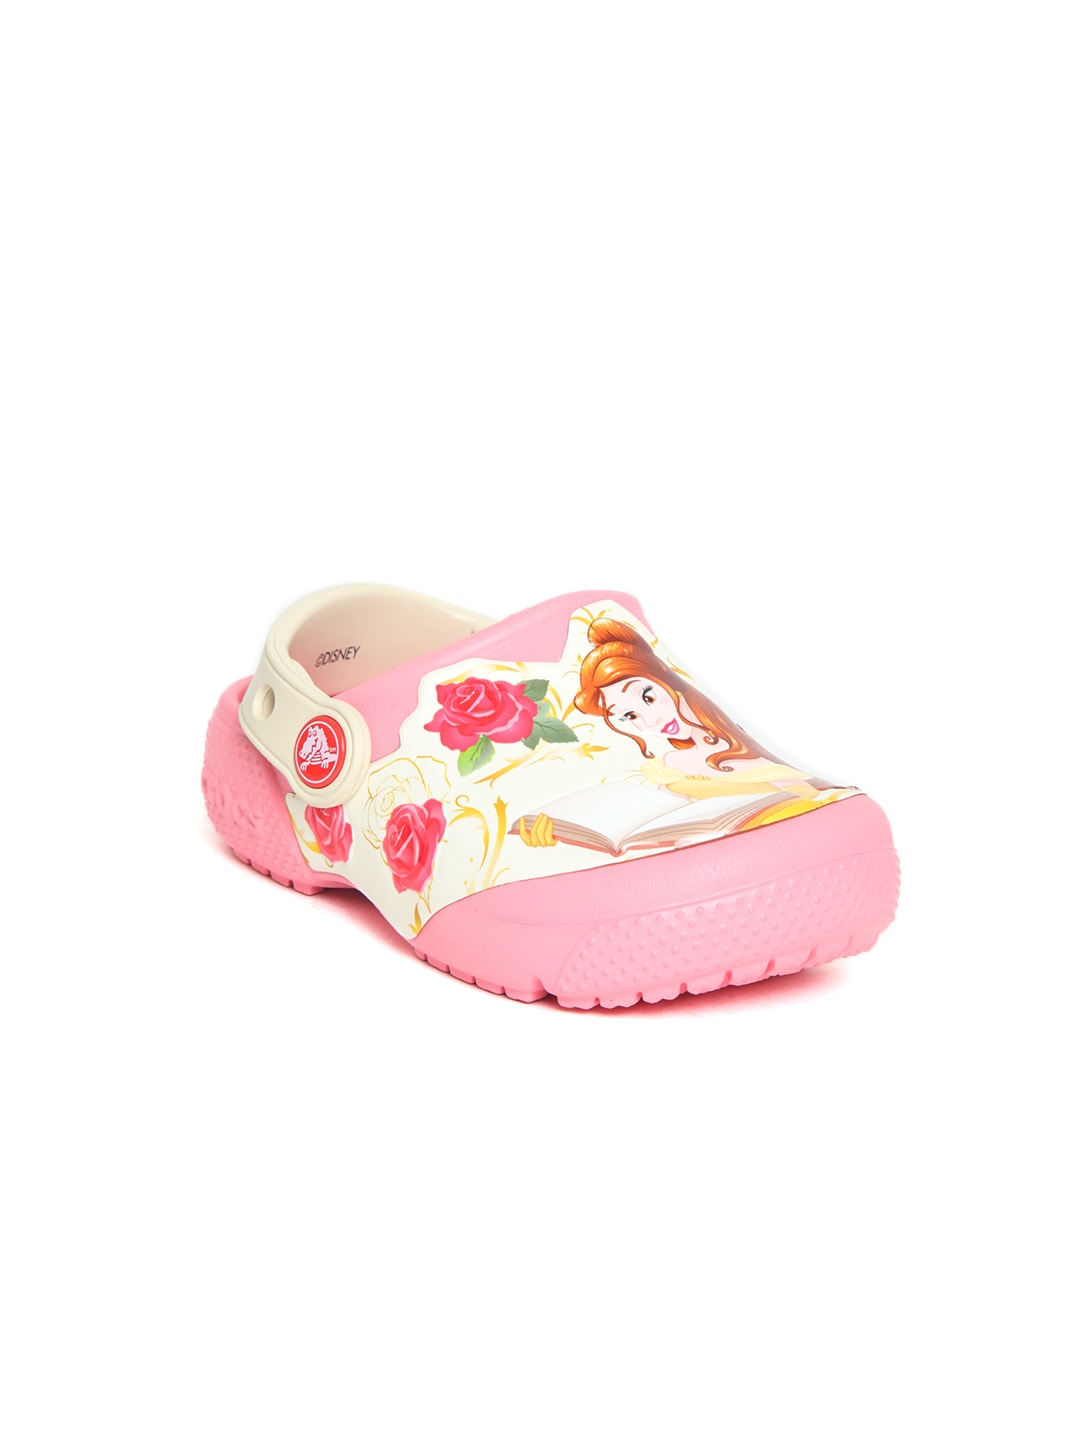 Crocs Kids Pink & White Princess Belle Print Clogs image